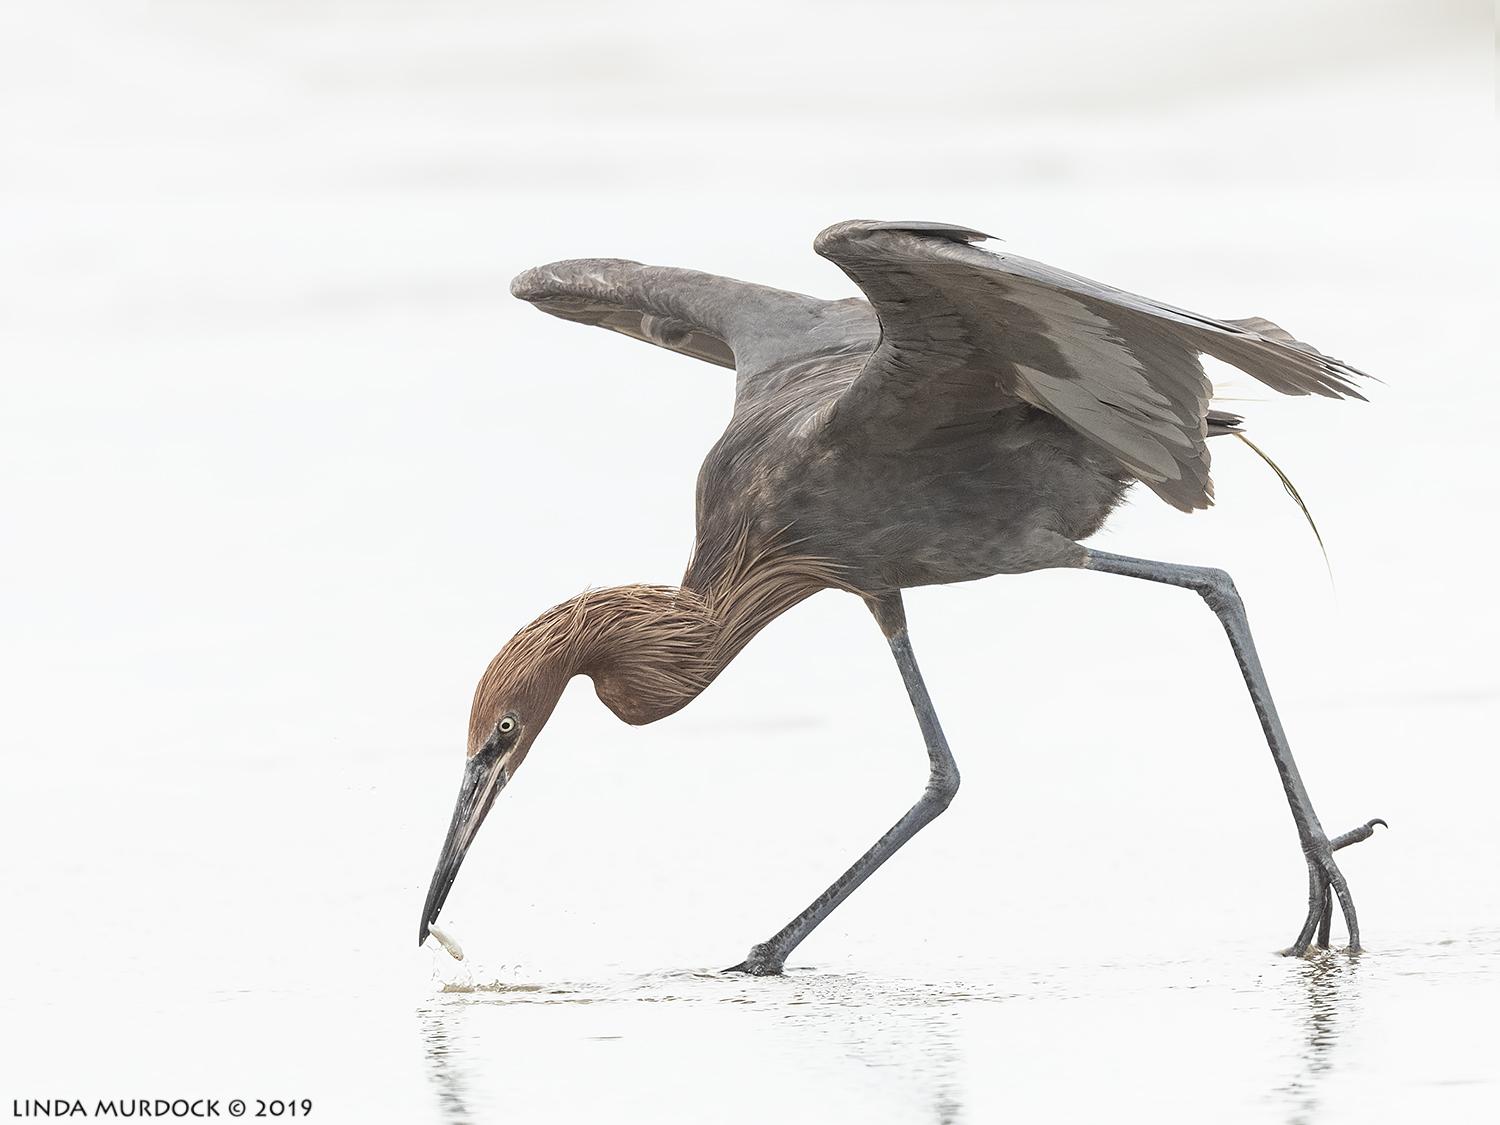 Reddish Egret doing his thing Nikon D850 with Nikkor 500 f/5.6 PF VR ~ 1/2000 sec f/6.3 ISO 1250